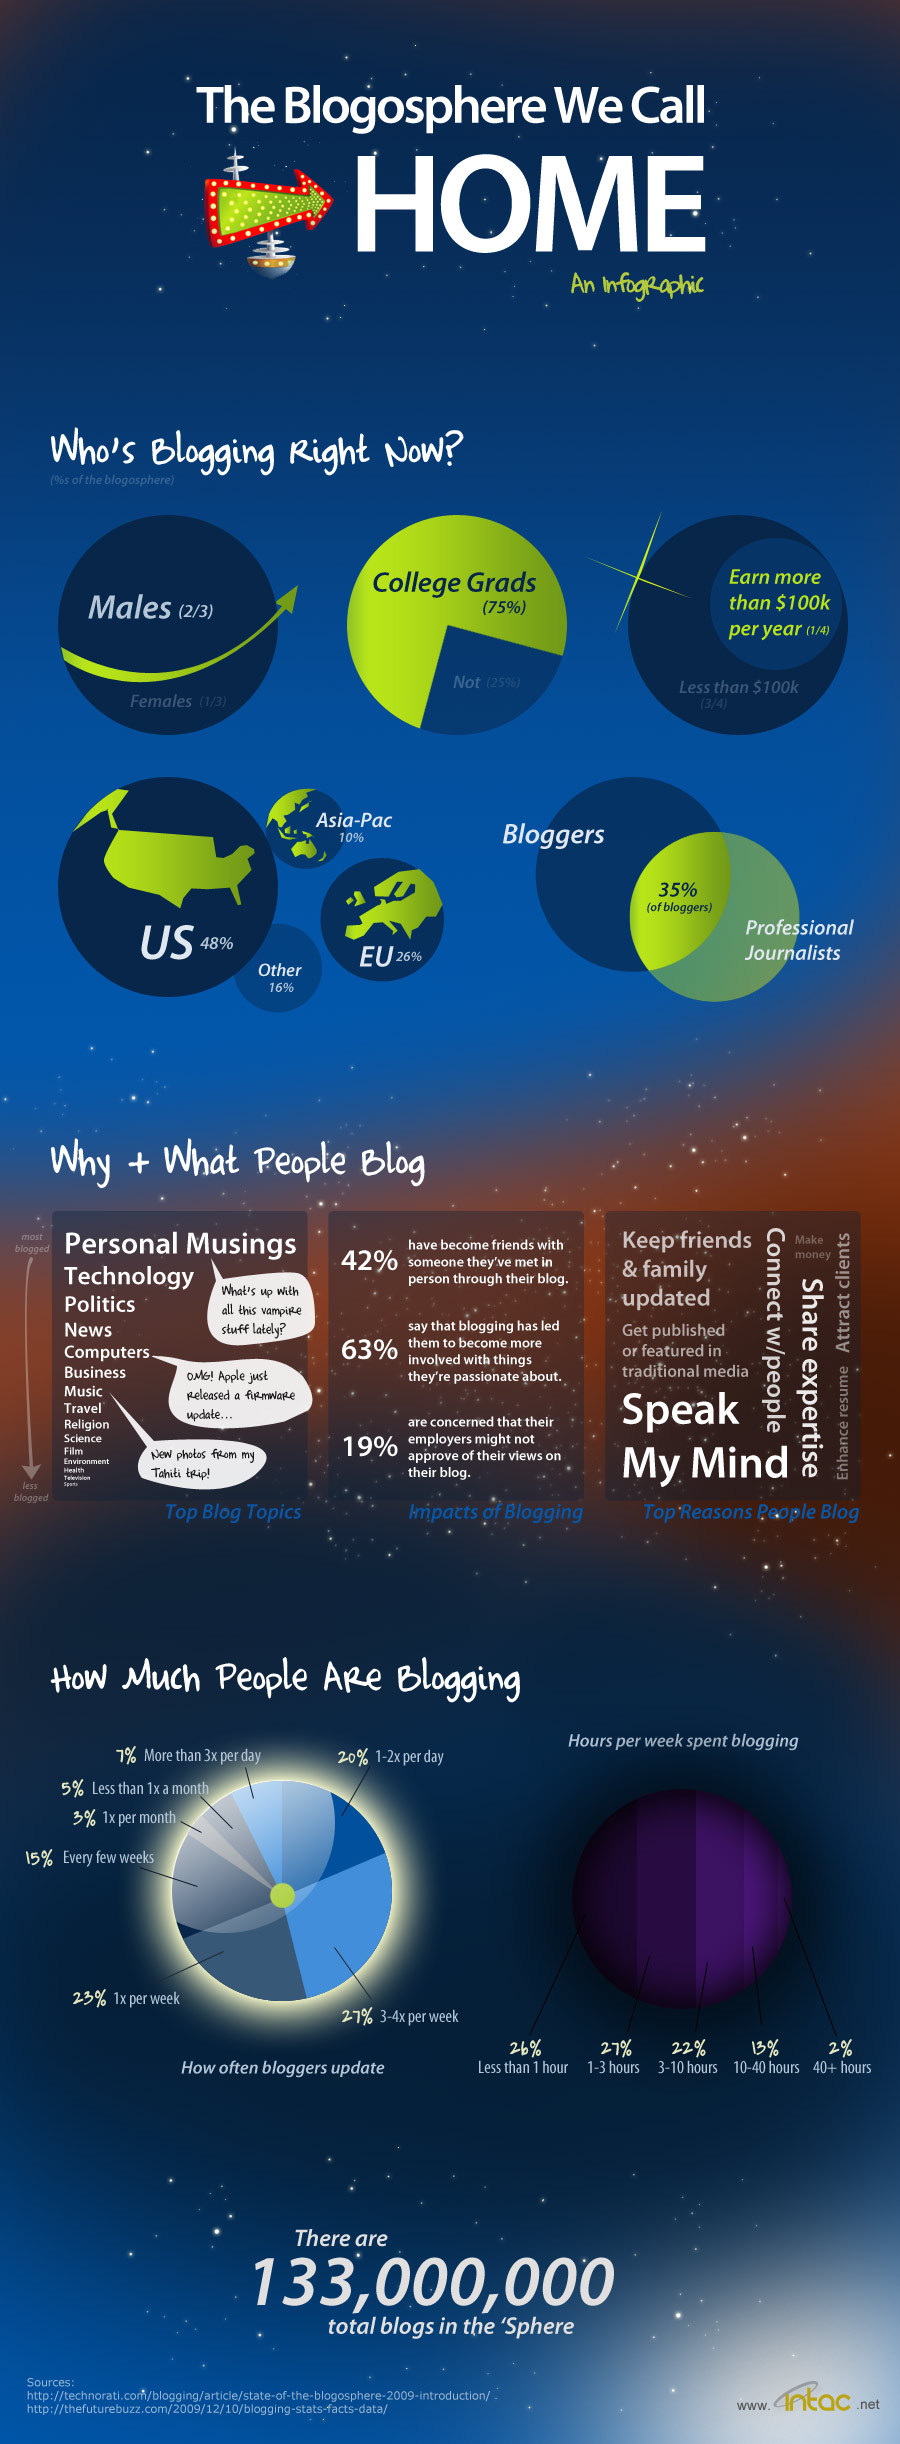 blogosphere-informations-infographie